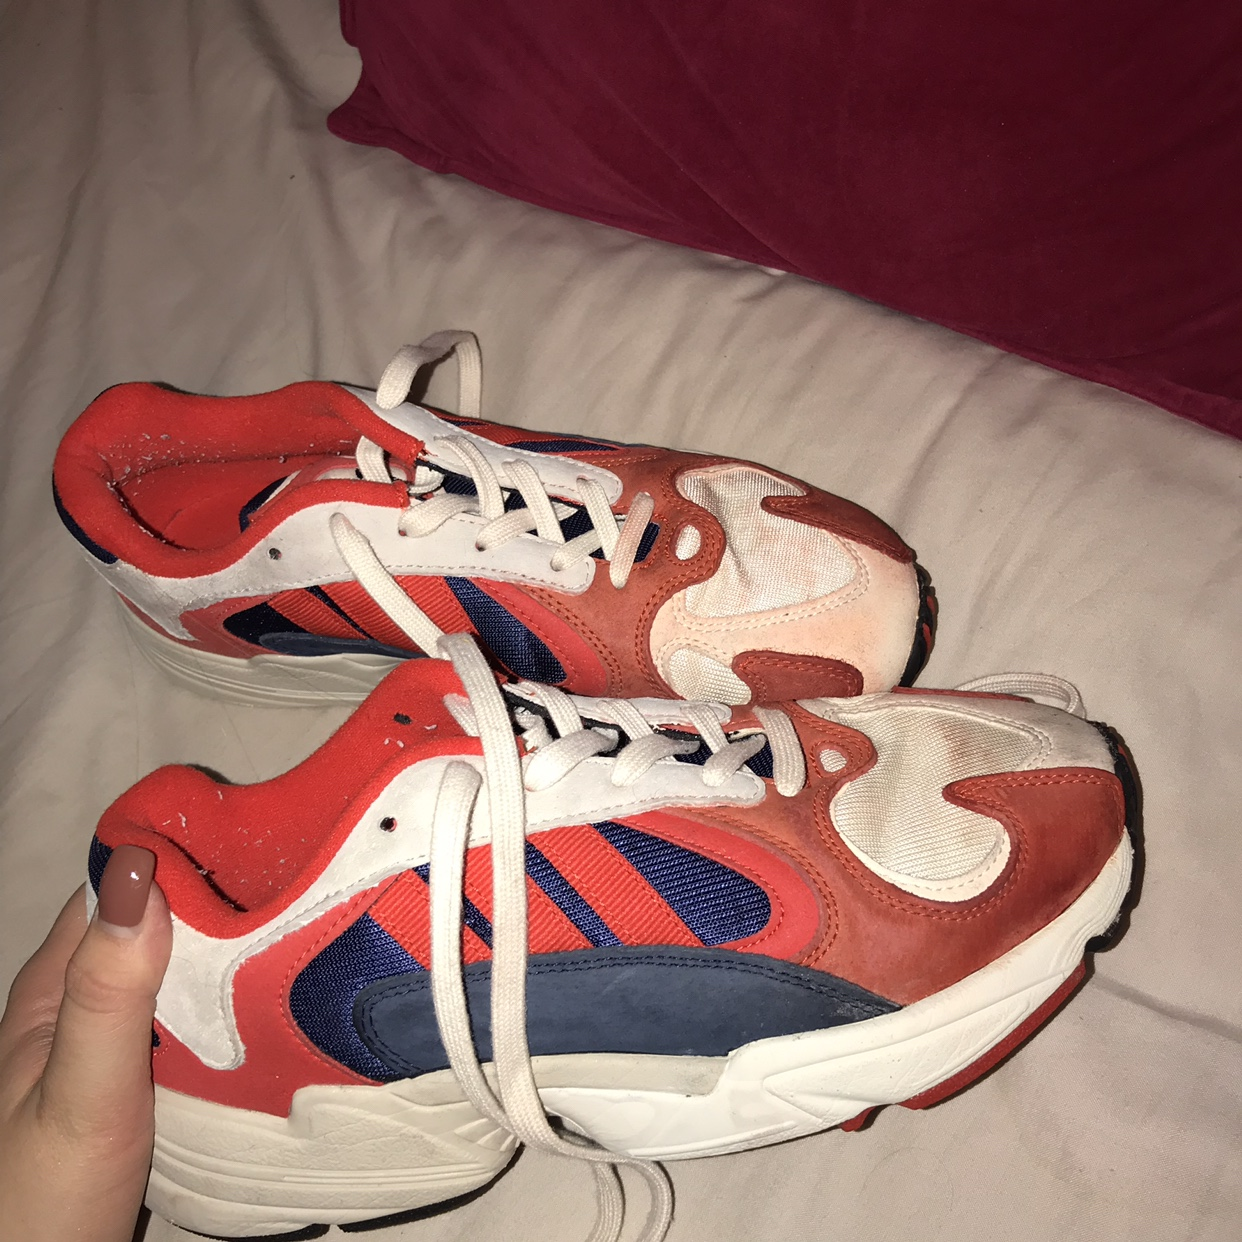 size 1 trainers sale